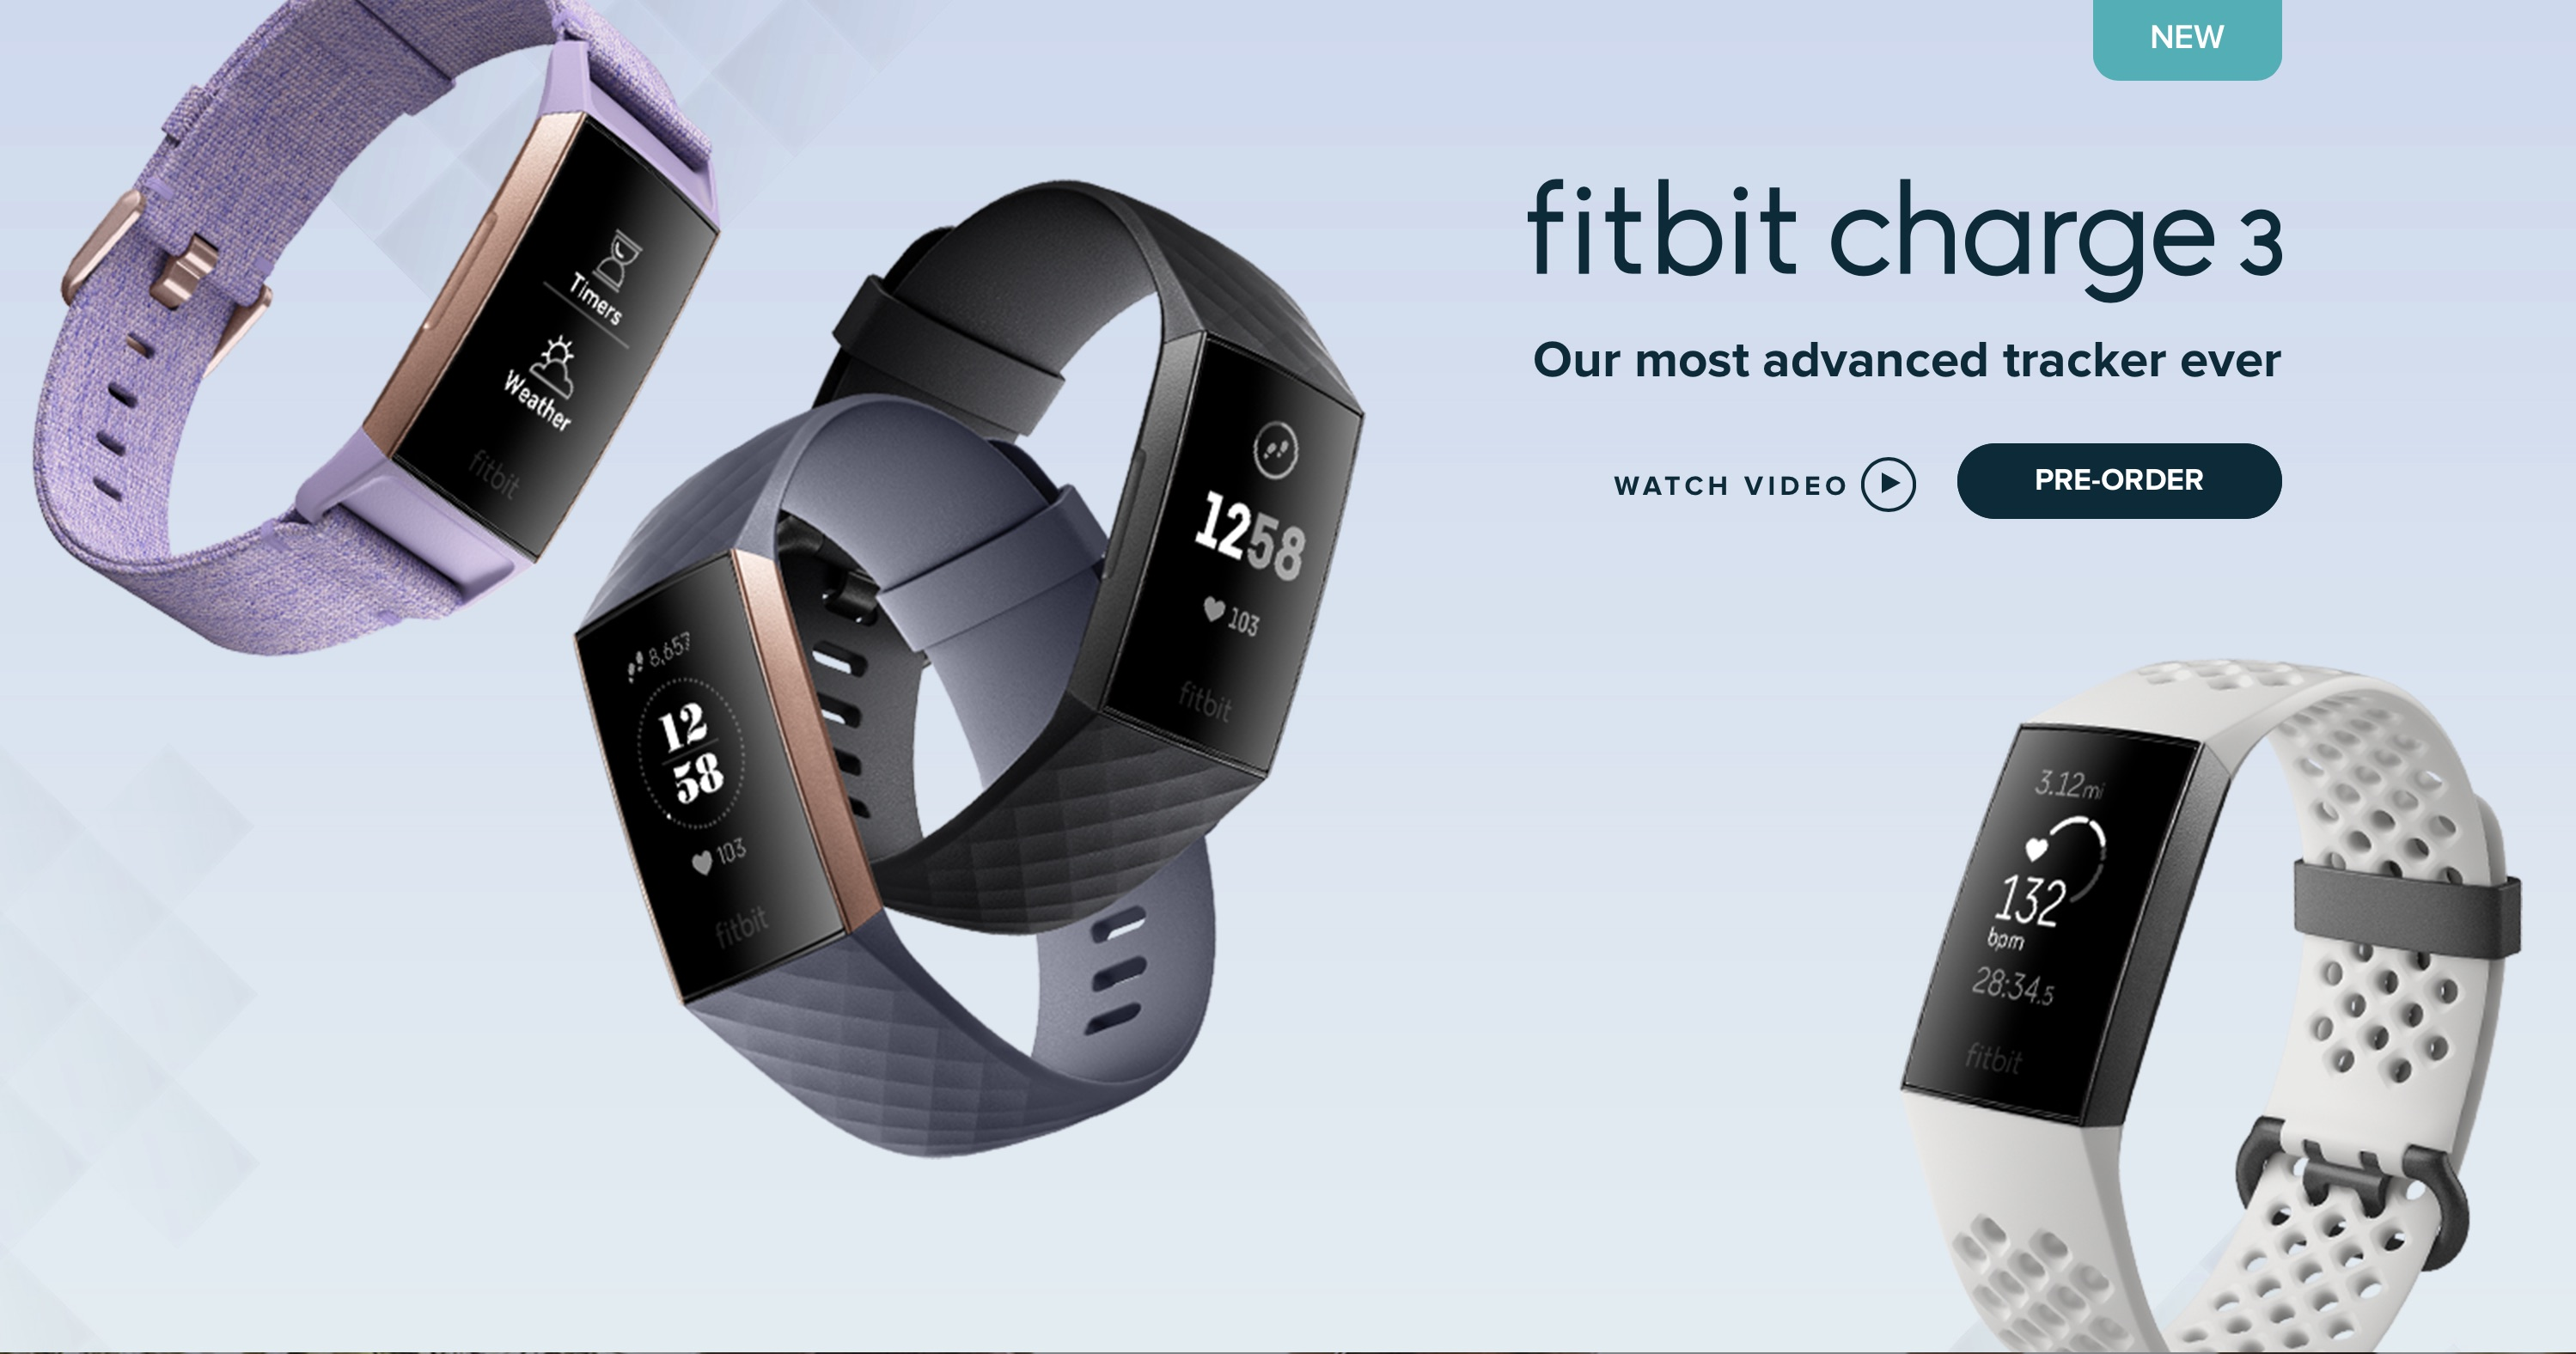 fitbit charge 3 unveiled as fitbit s most advanced health fitness